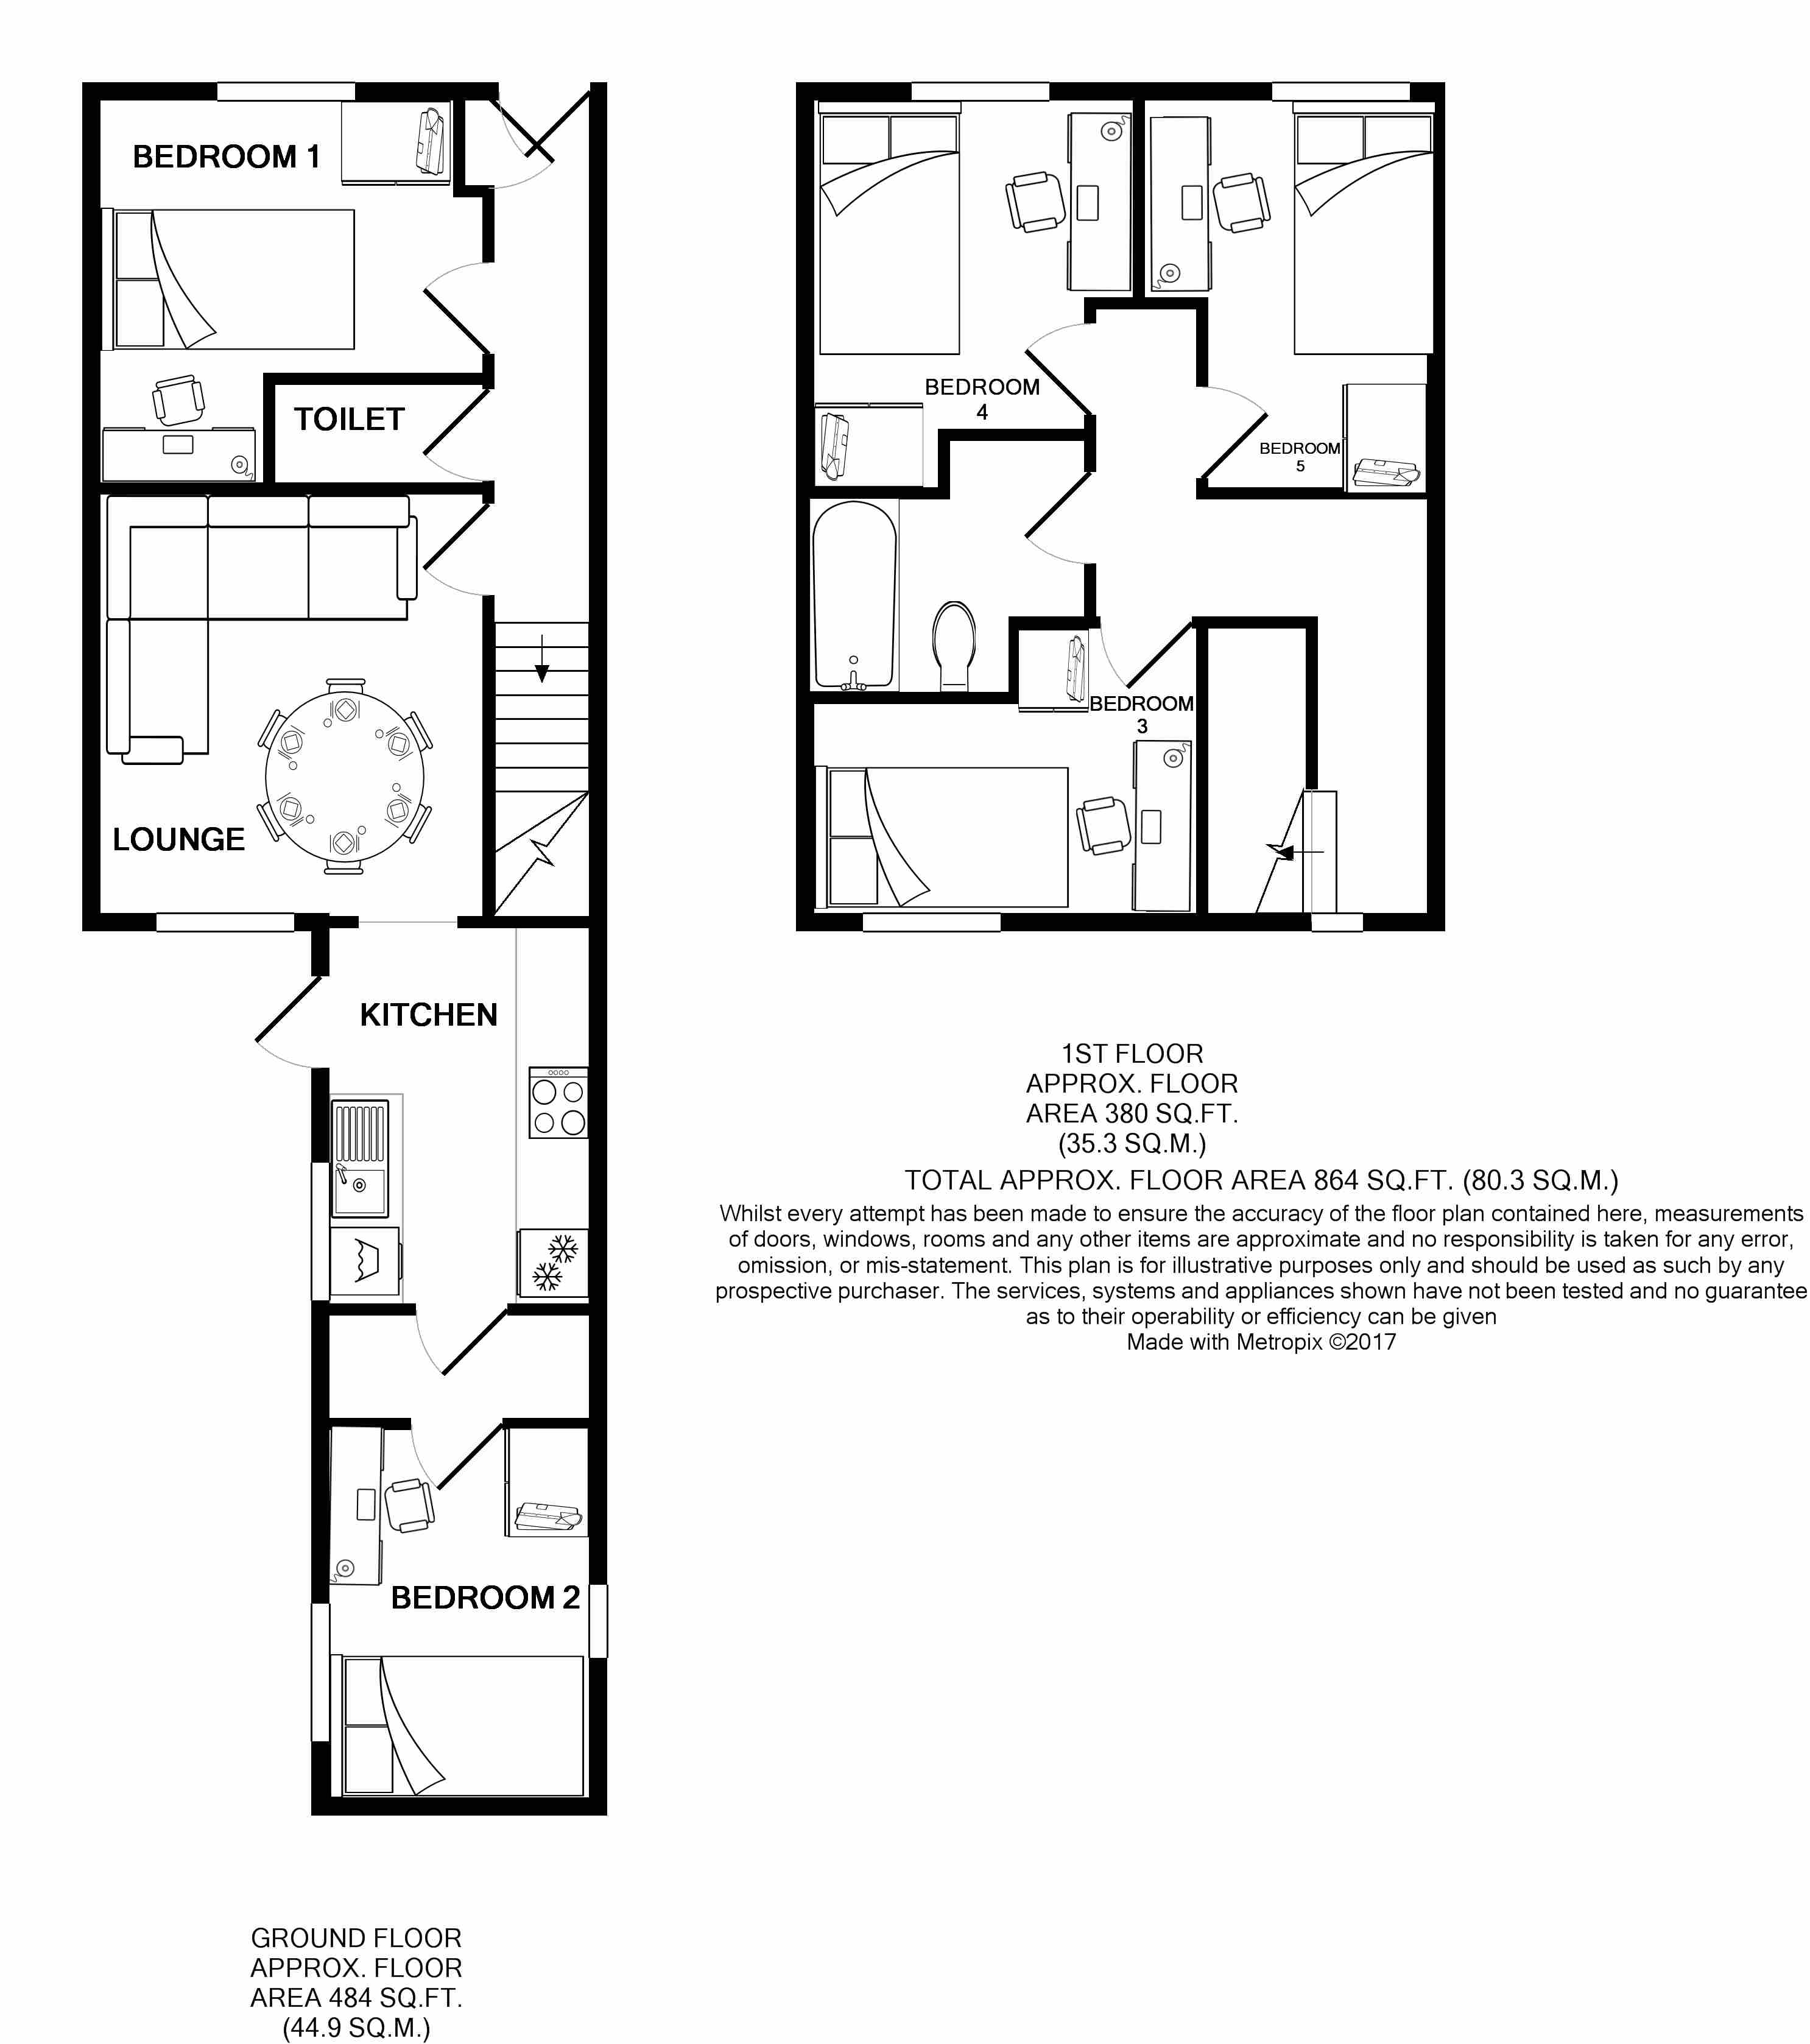 21 Queen Anne Street Floorplans